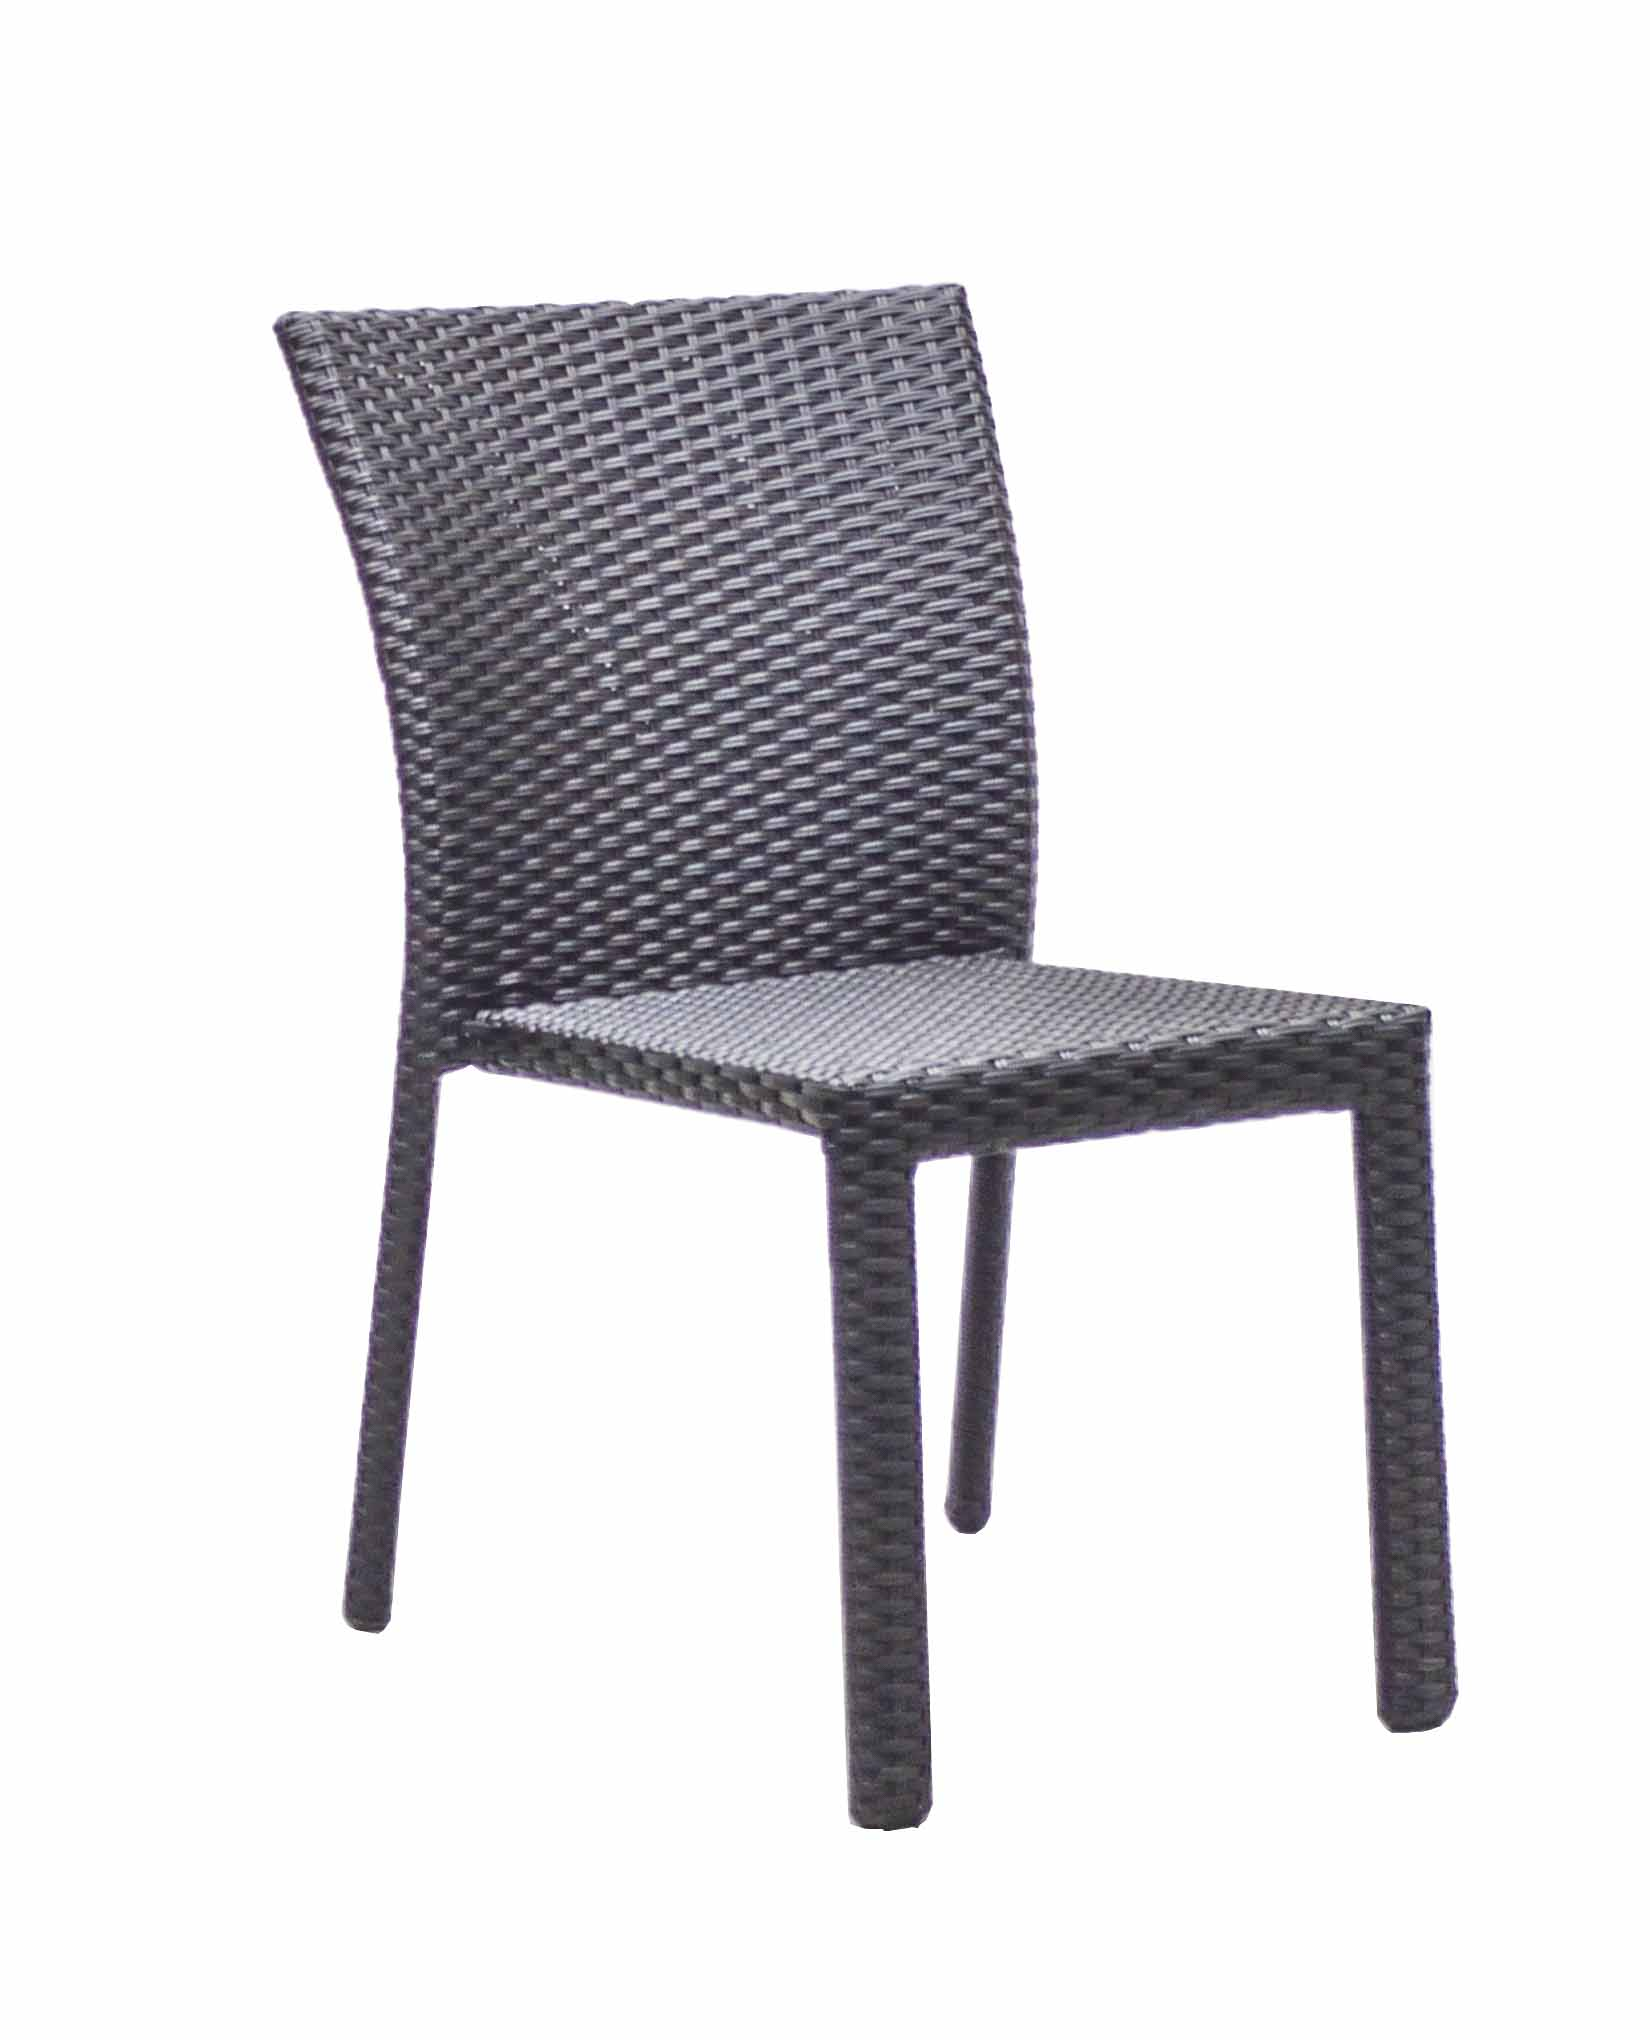 "881720 Napa Side Chair   22.6"" x 26"" x 36"""